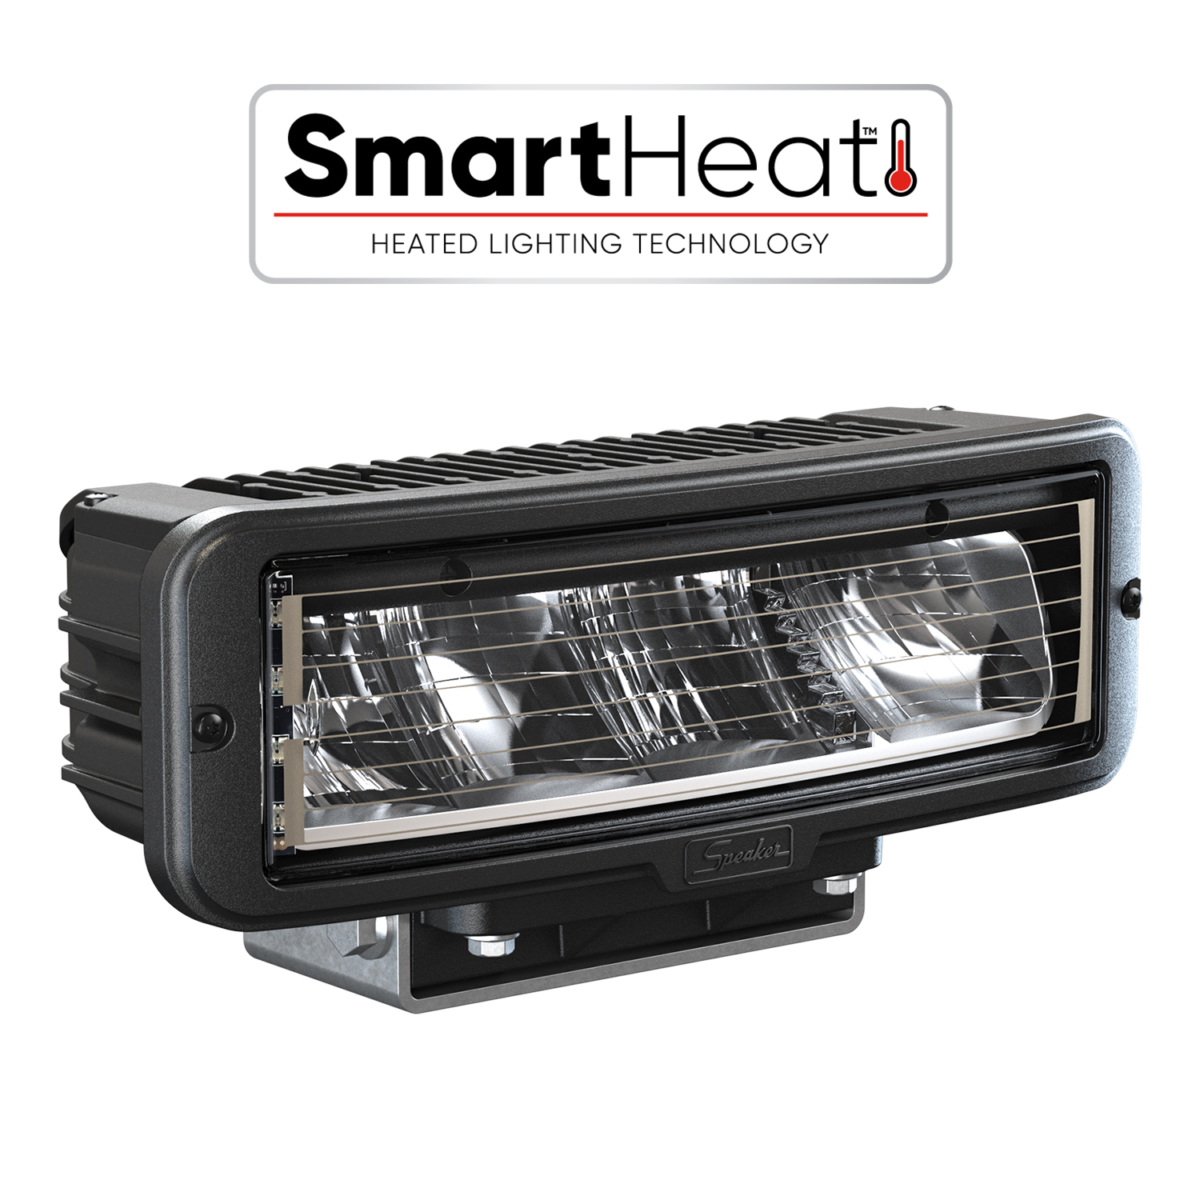 LED Heated Headlight – Model 9800